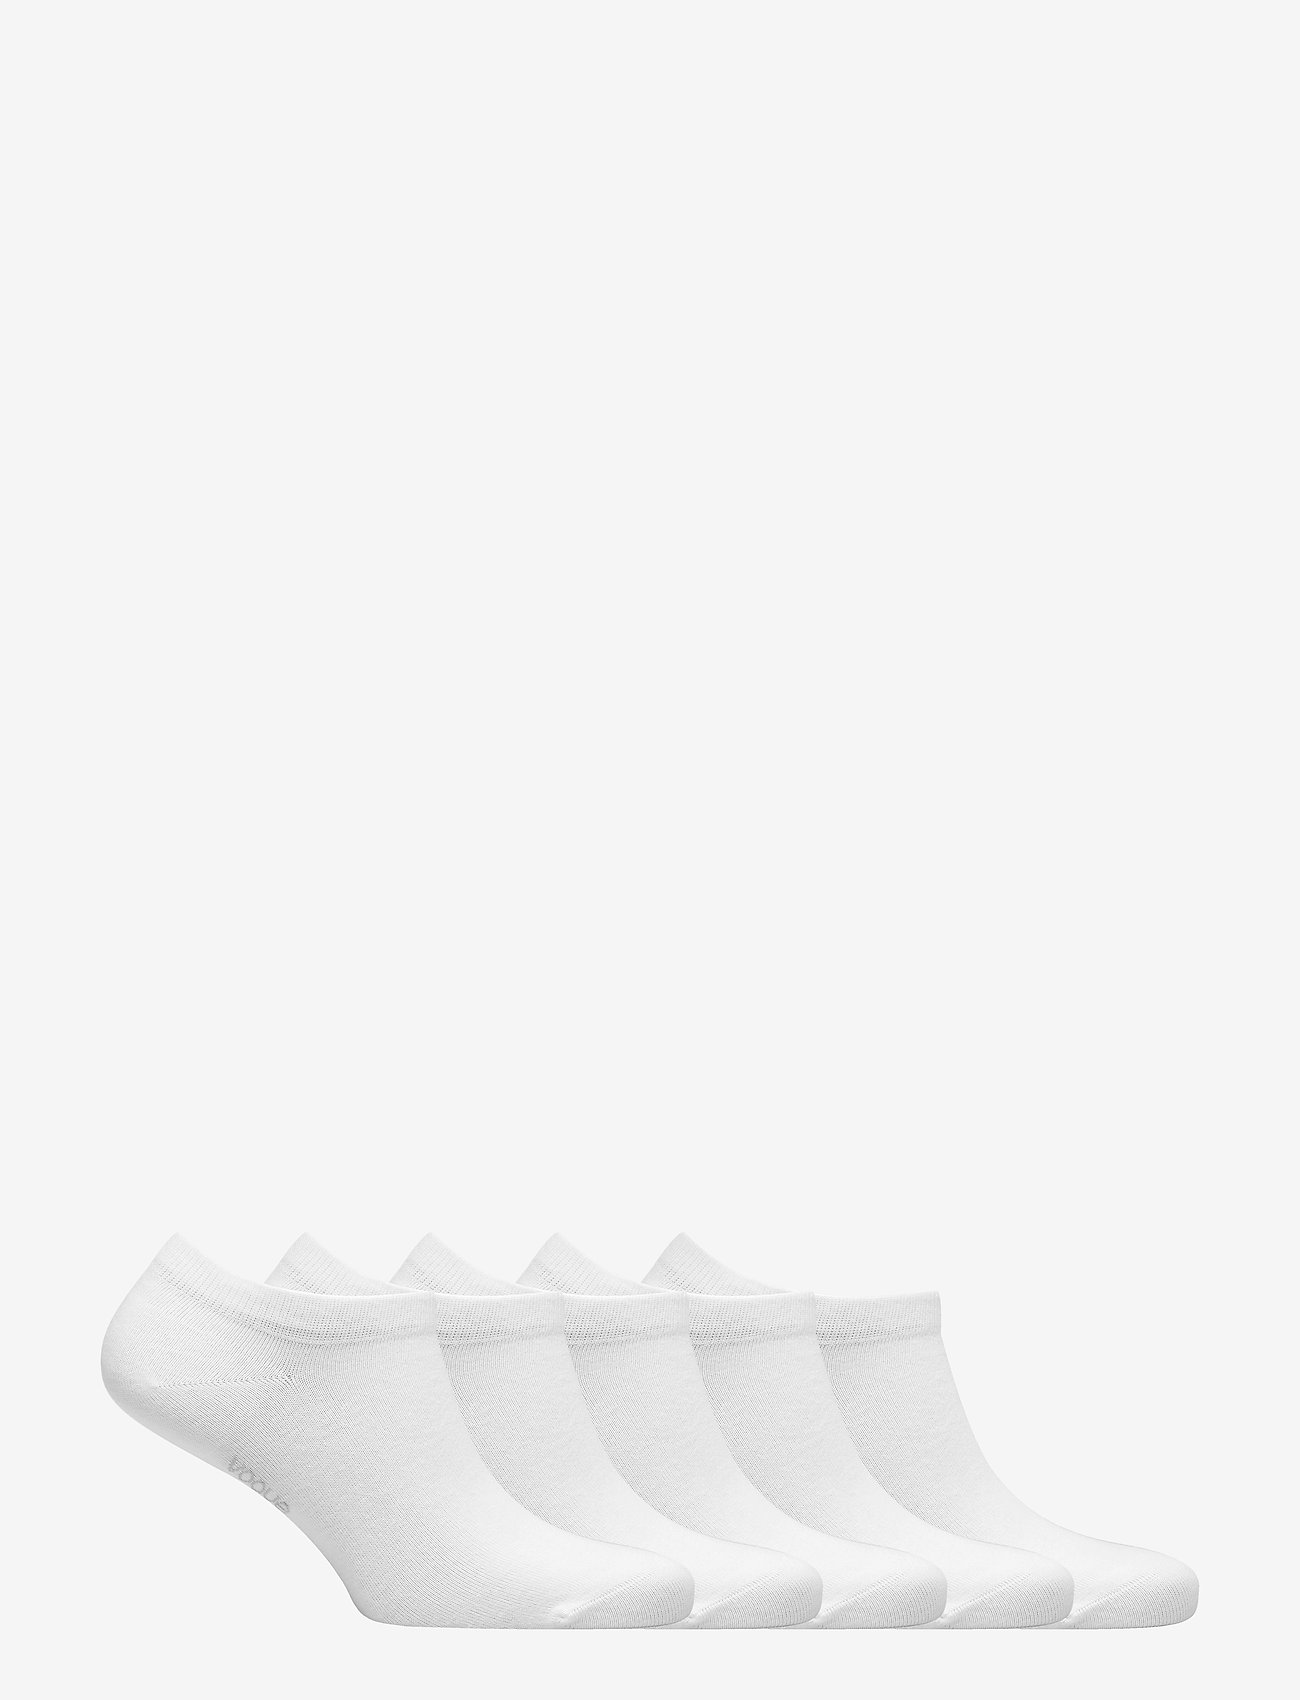 Vogue - Ladies steps, Cotton Basic Sneaker 5-pack - ankle socks - white - 1